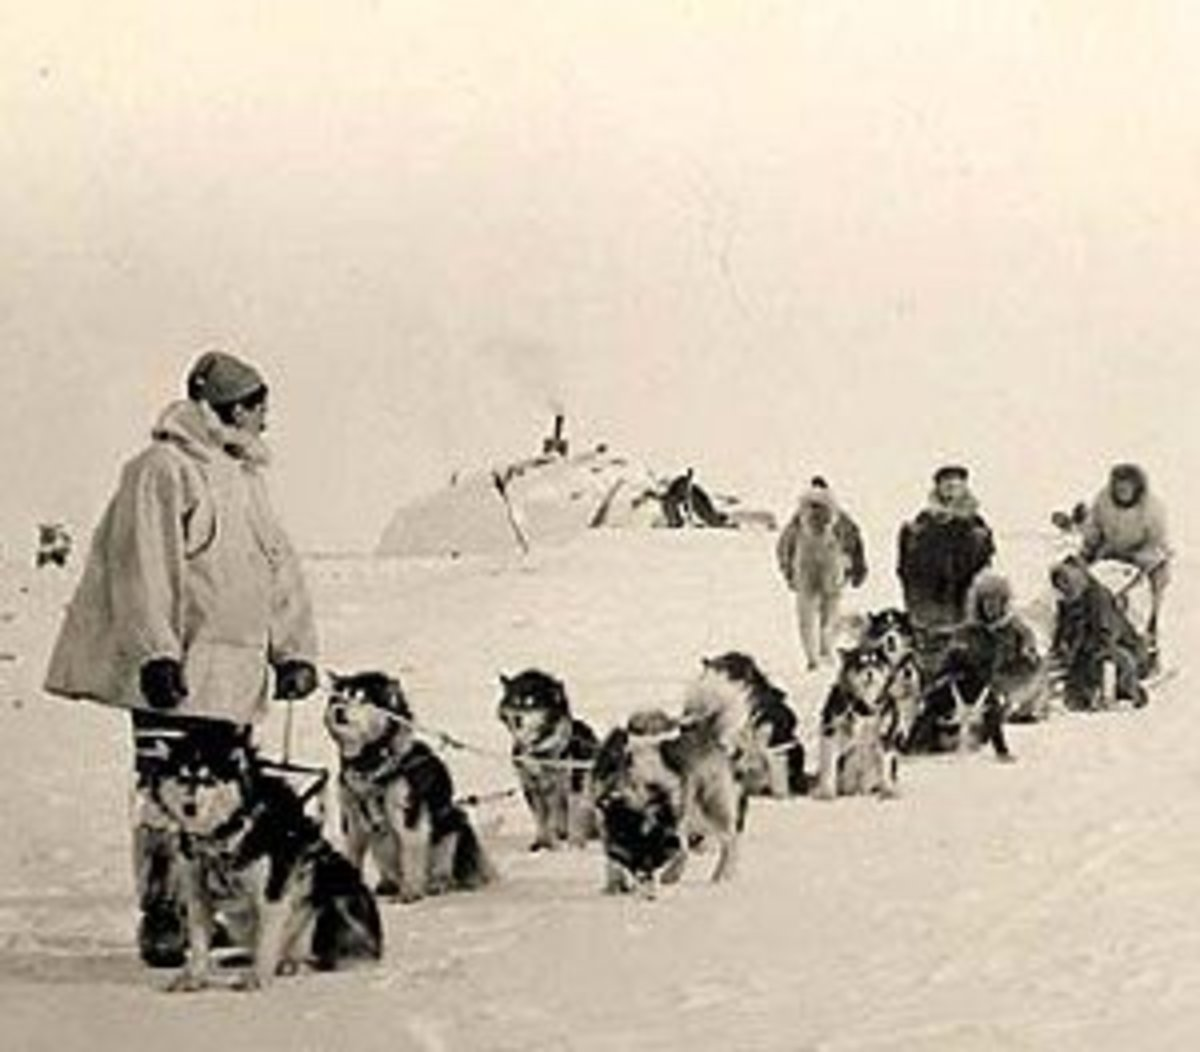 Team of Malamutes from Alaska circa 1950s